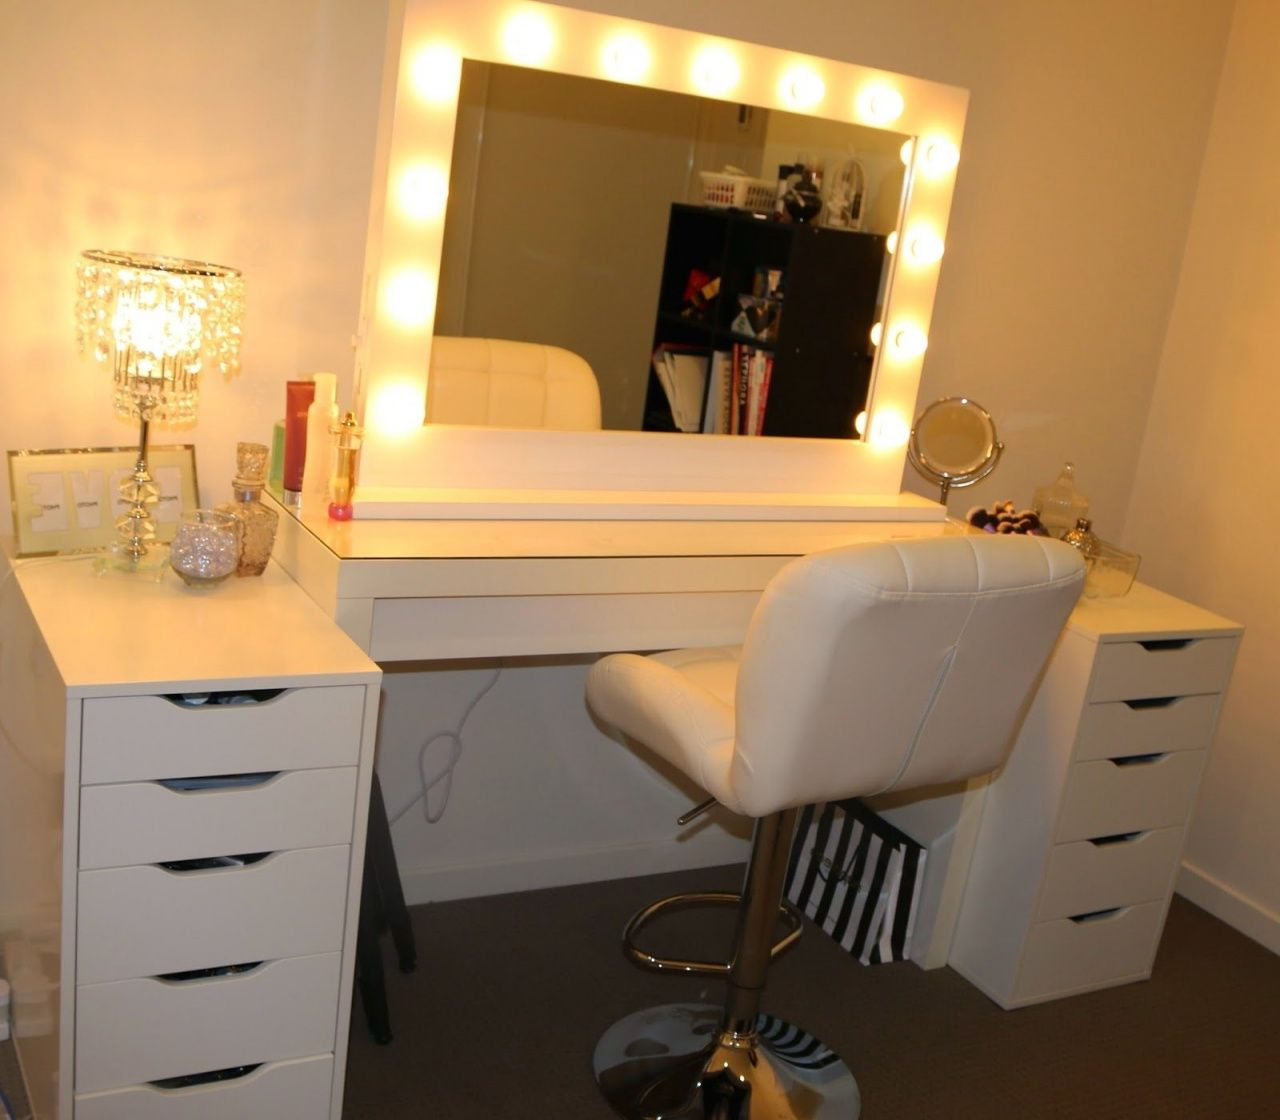 Lighted makeup mirror vanity table expensive home office furniture lighted makeup mirror vanity table expensive home office furniture check more at httpnikkitsfunlighted makeup mirror vanity table mozeypictures Images